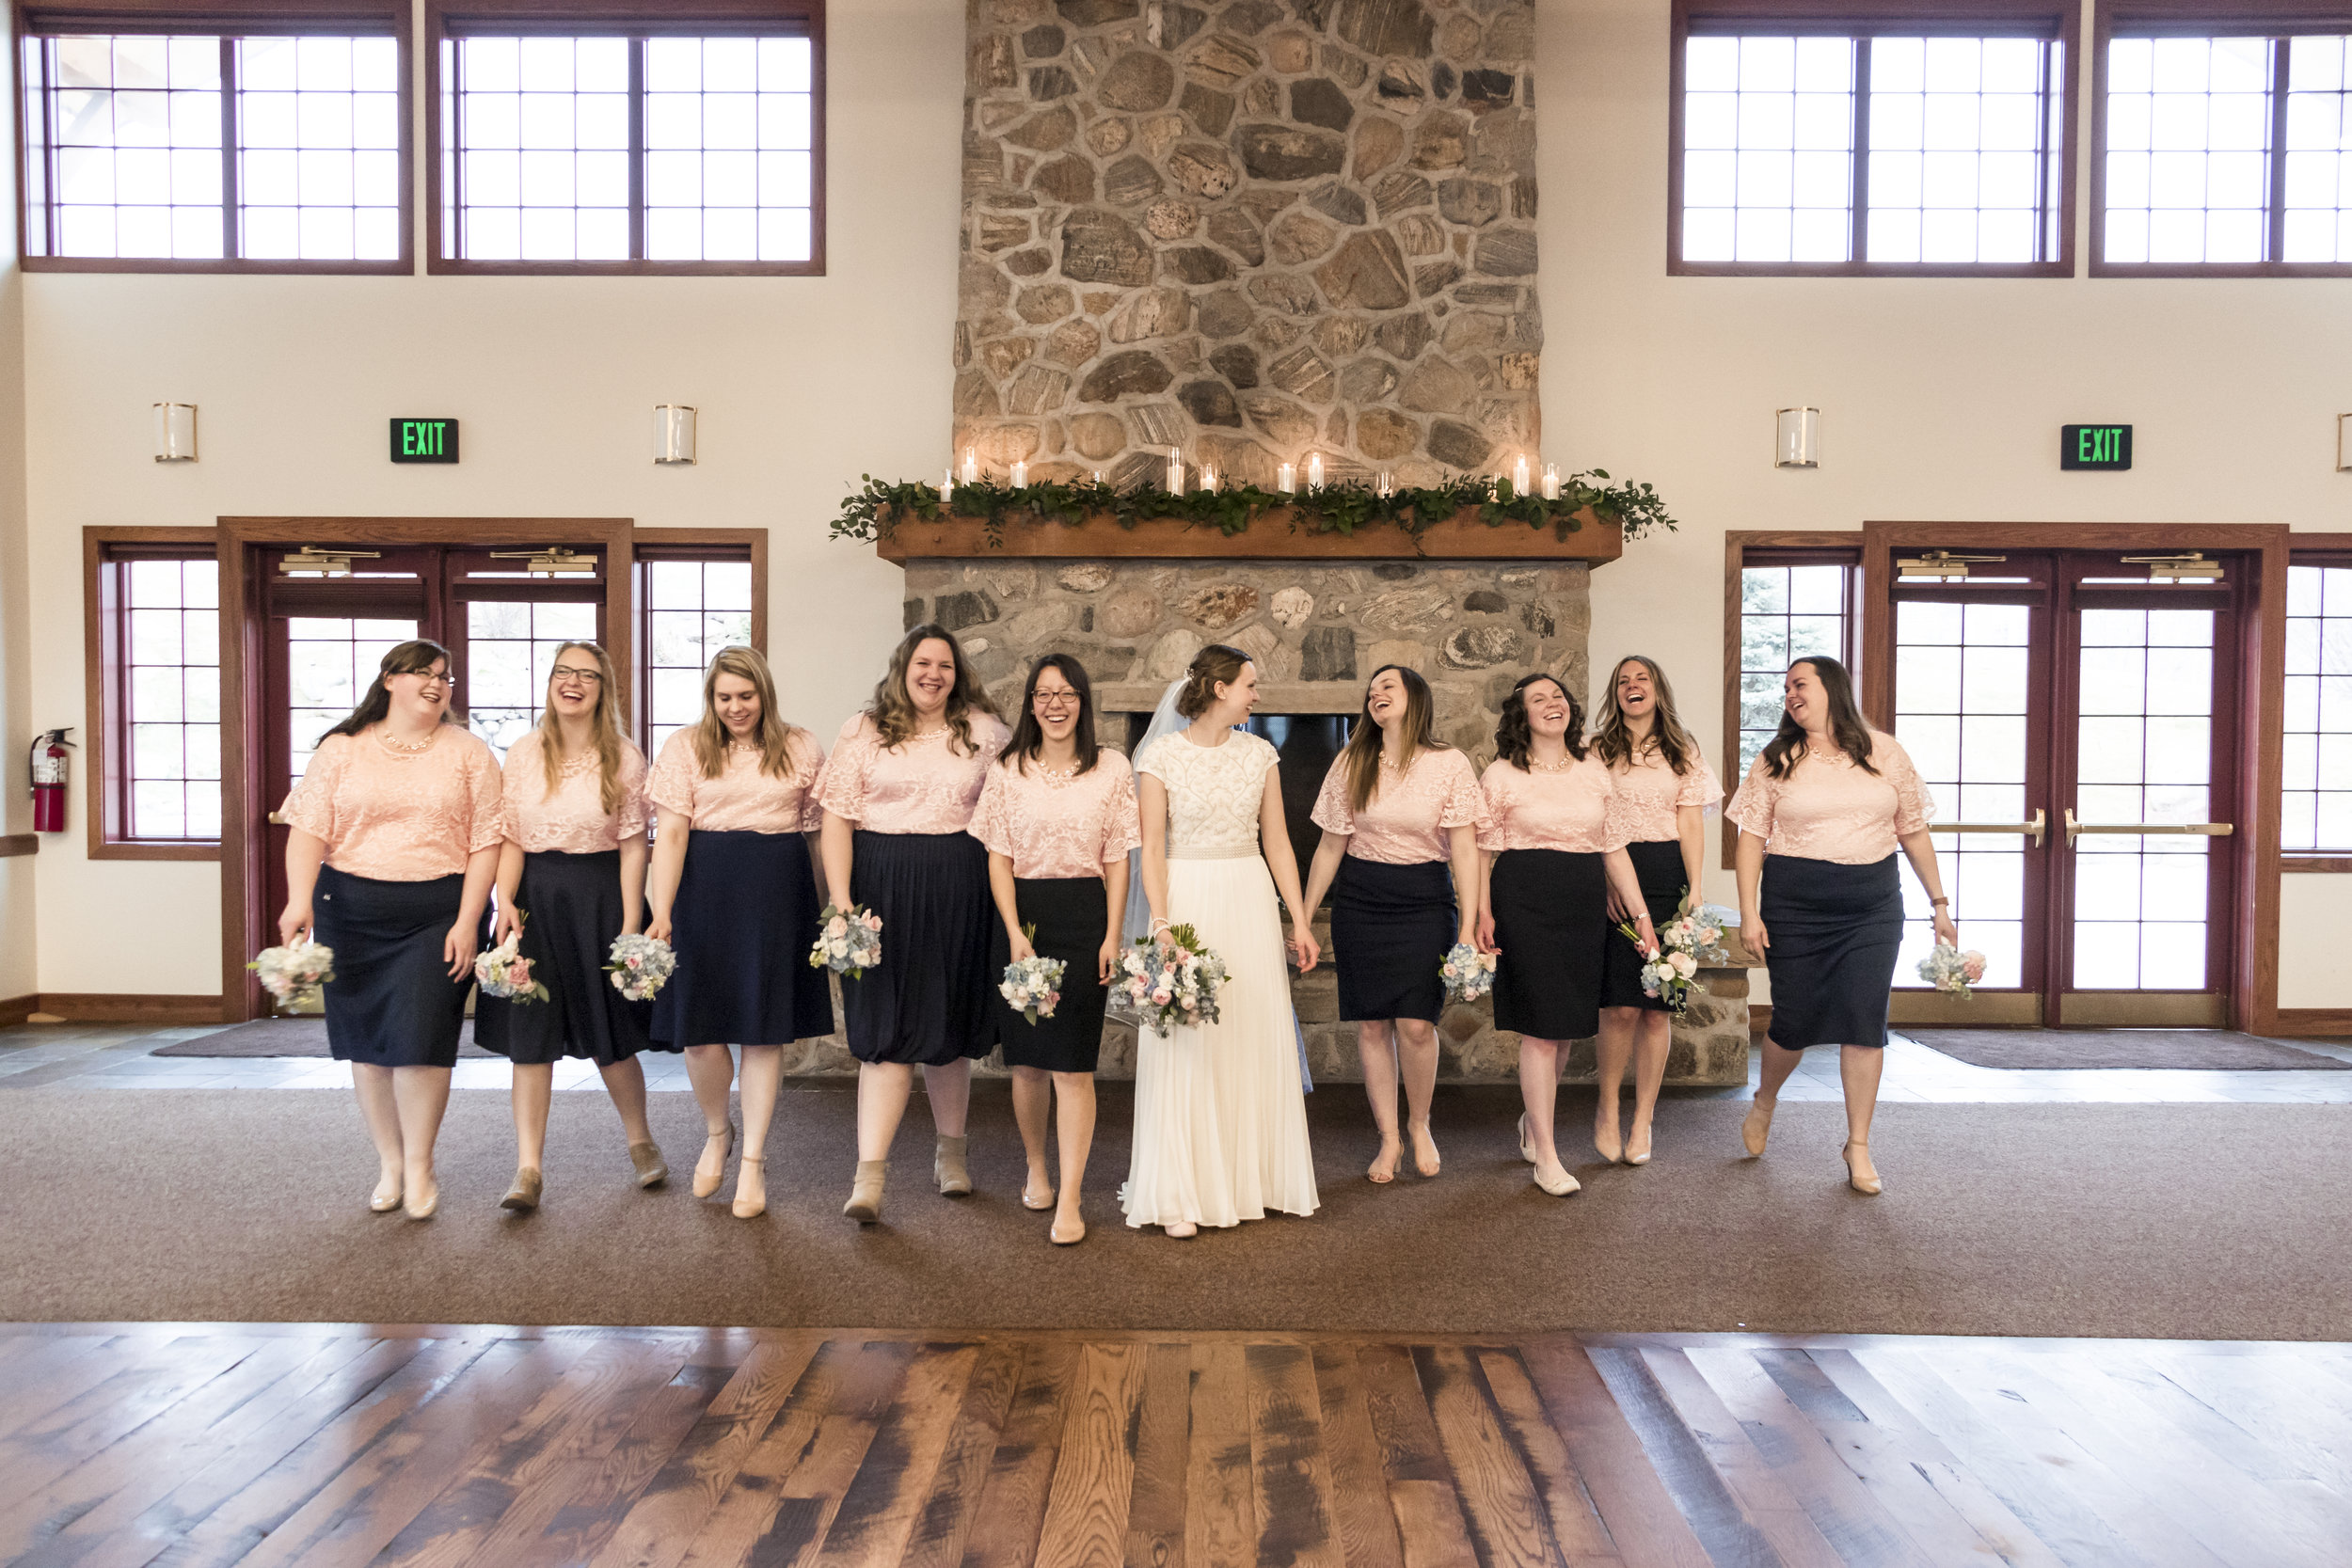 Utah Spring Wedding in a rustic barn by Bri Bergman Photography02.JPG